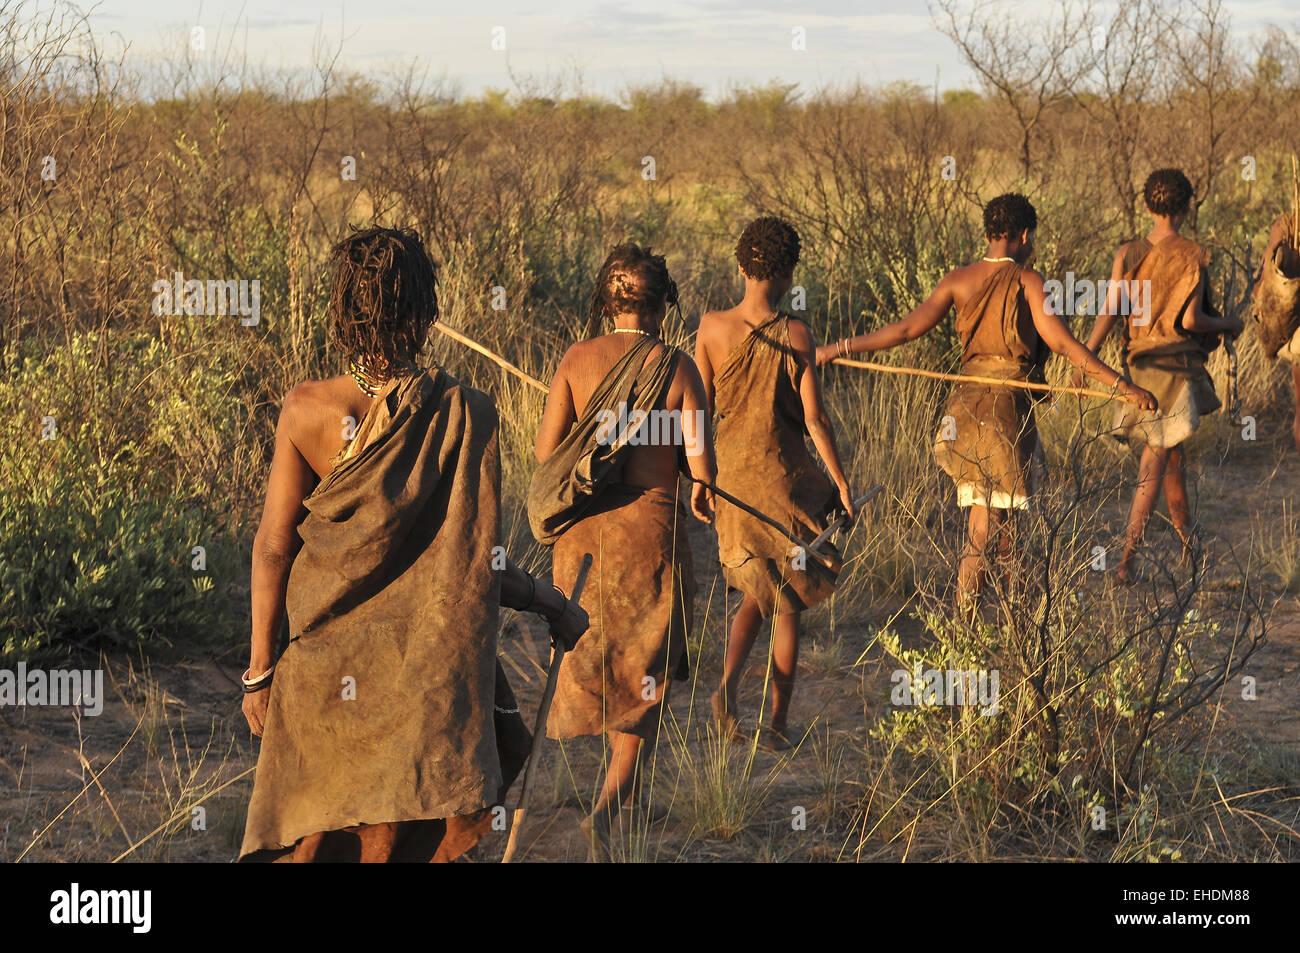 the bushmen of the kalahari desert Cultural visit to the ju'/hoasi bushmen of the kalahari, botswana  your  encounter with the bushmen of the kalahari will include learning the bushman's   spending two or three nights in the quiet of the kalahari desert is an ideal way  of.